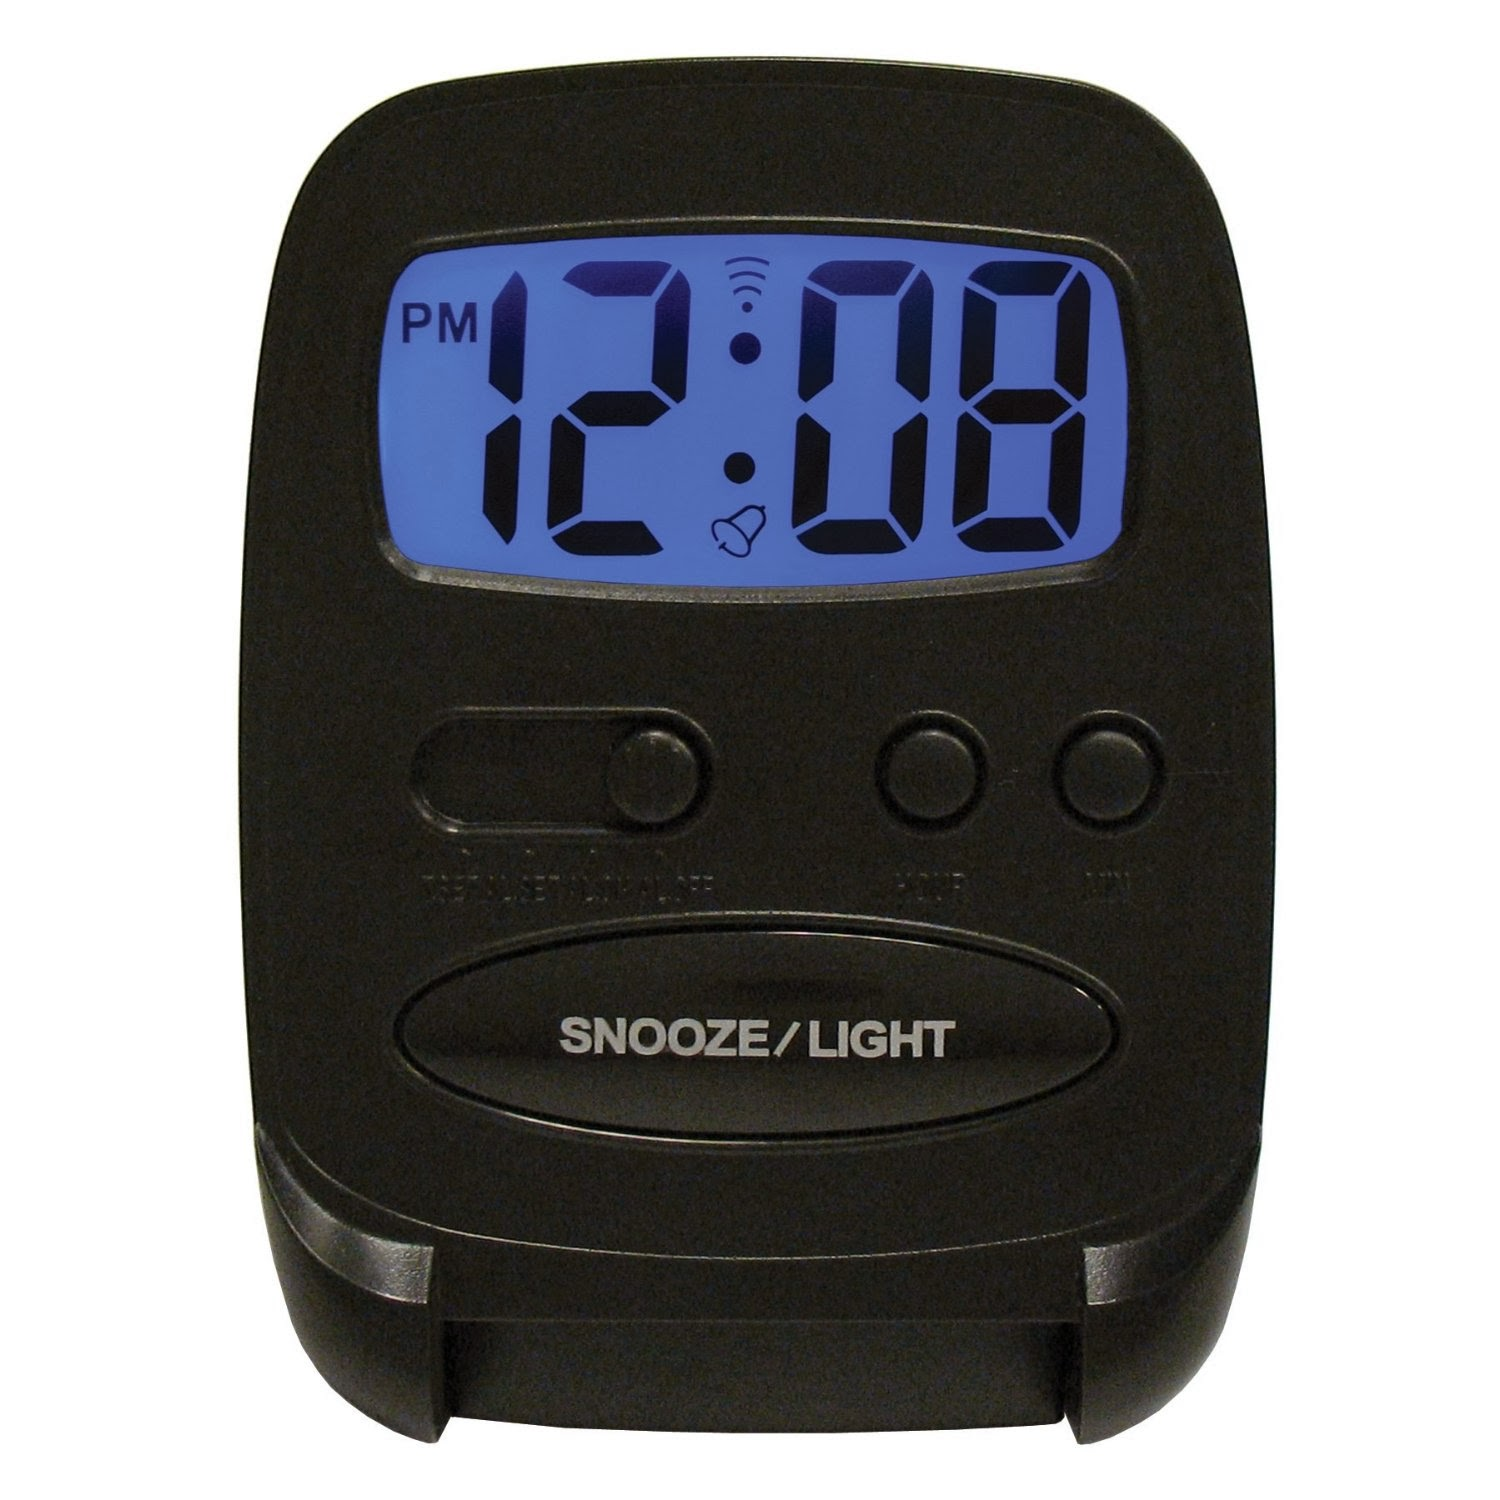 Best Travel Alarm Clocks | Best Travel